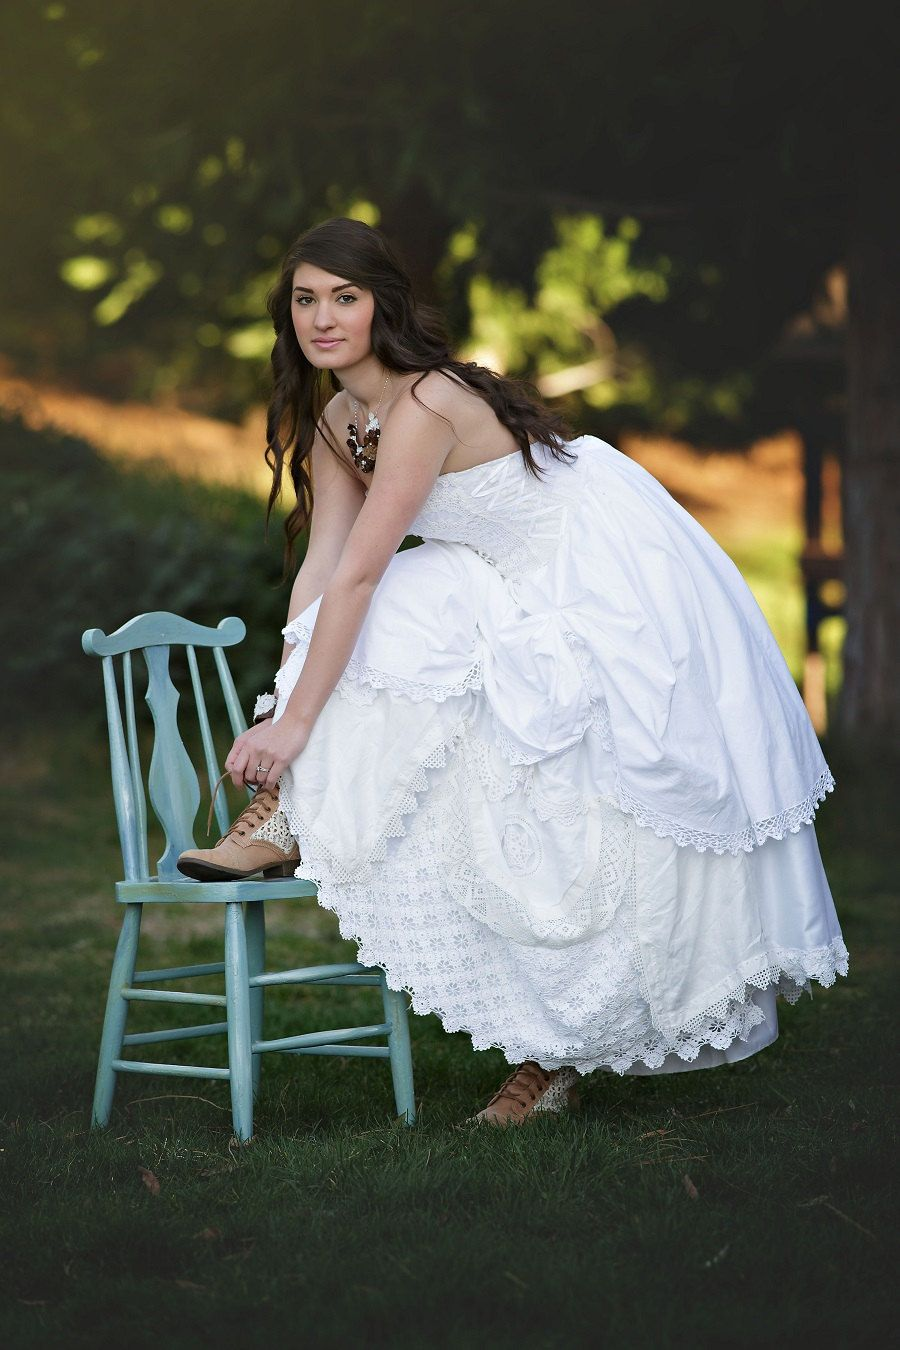 Country style lace wedding dress  Pin by jooana on wedding ideas for you  Pinterest  Lace weddings